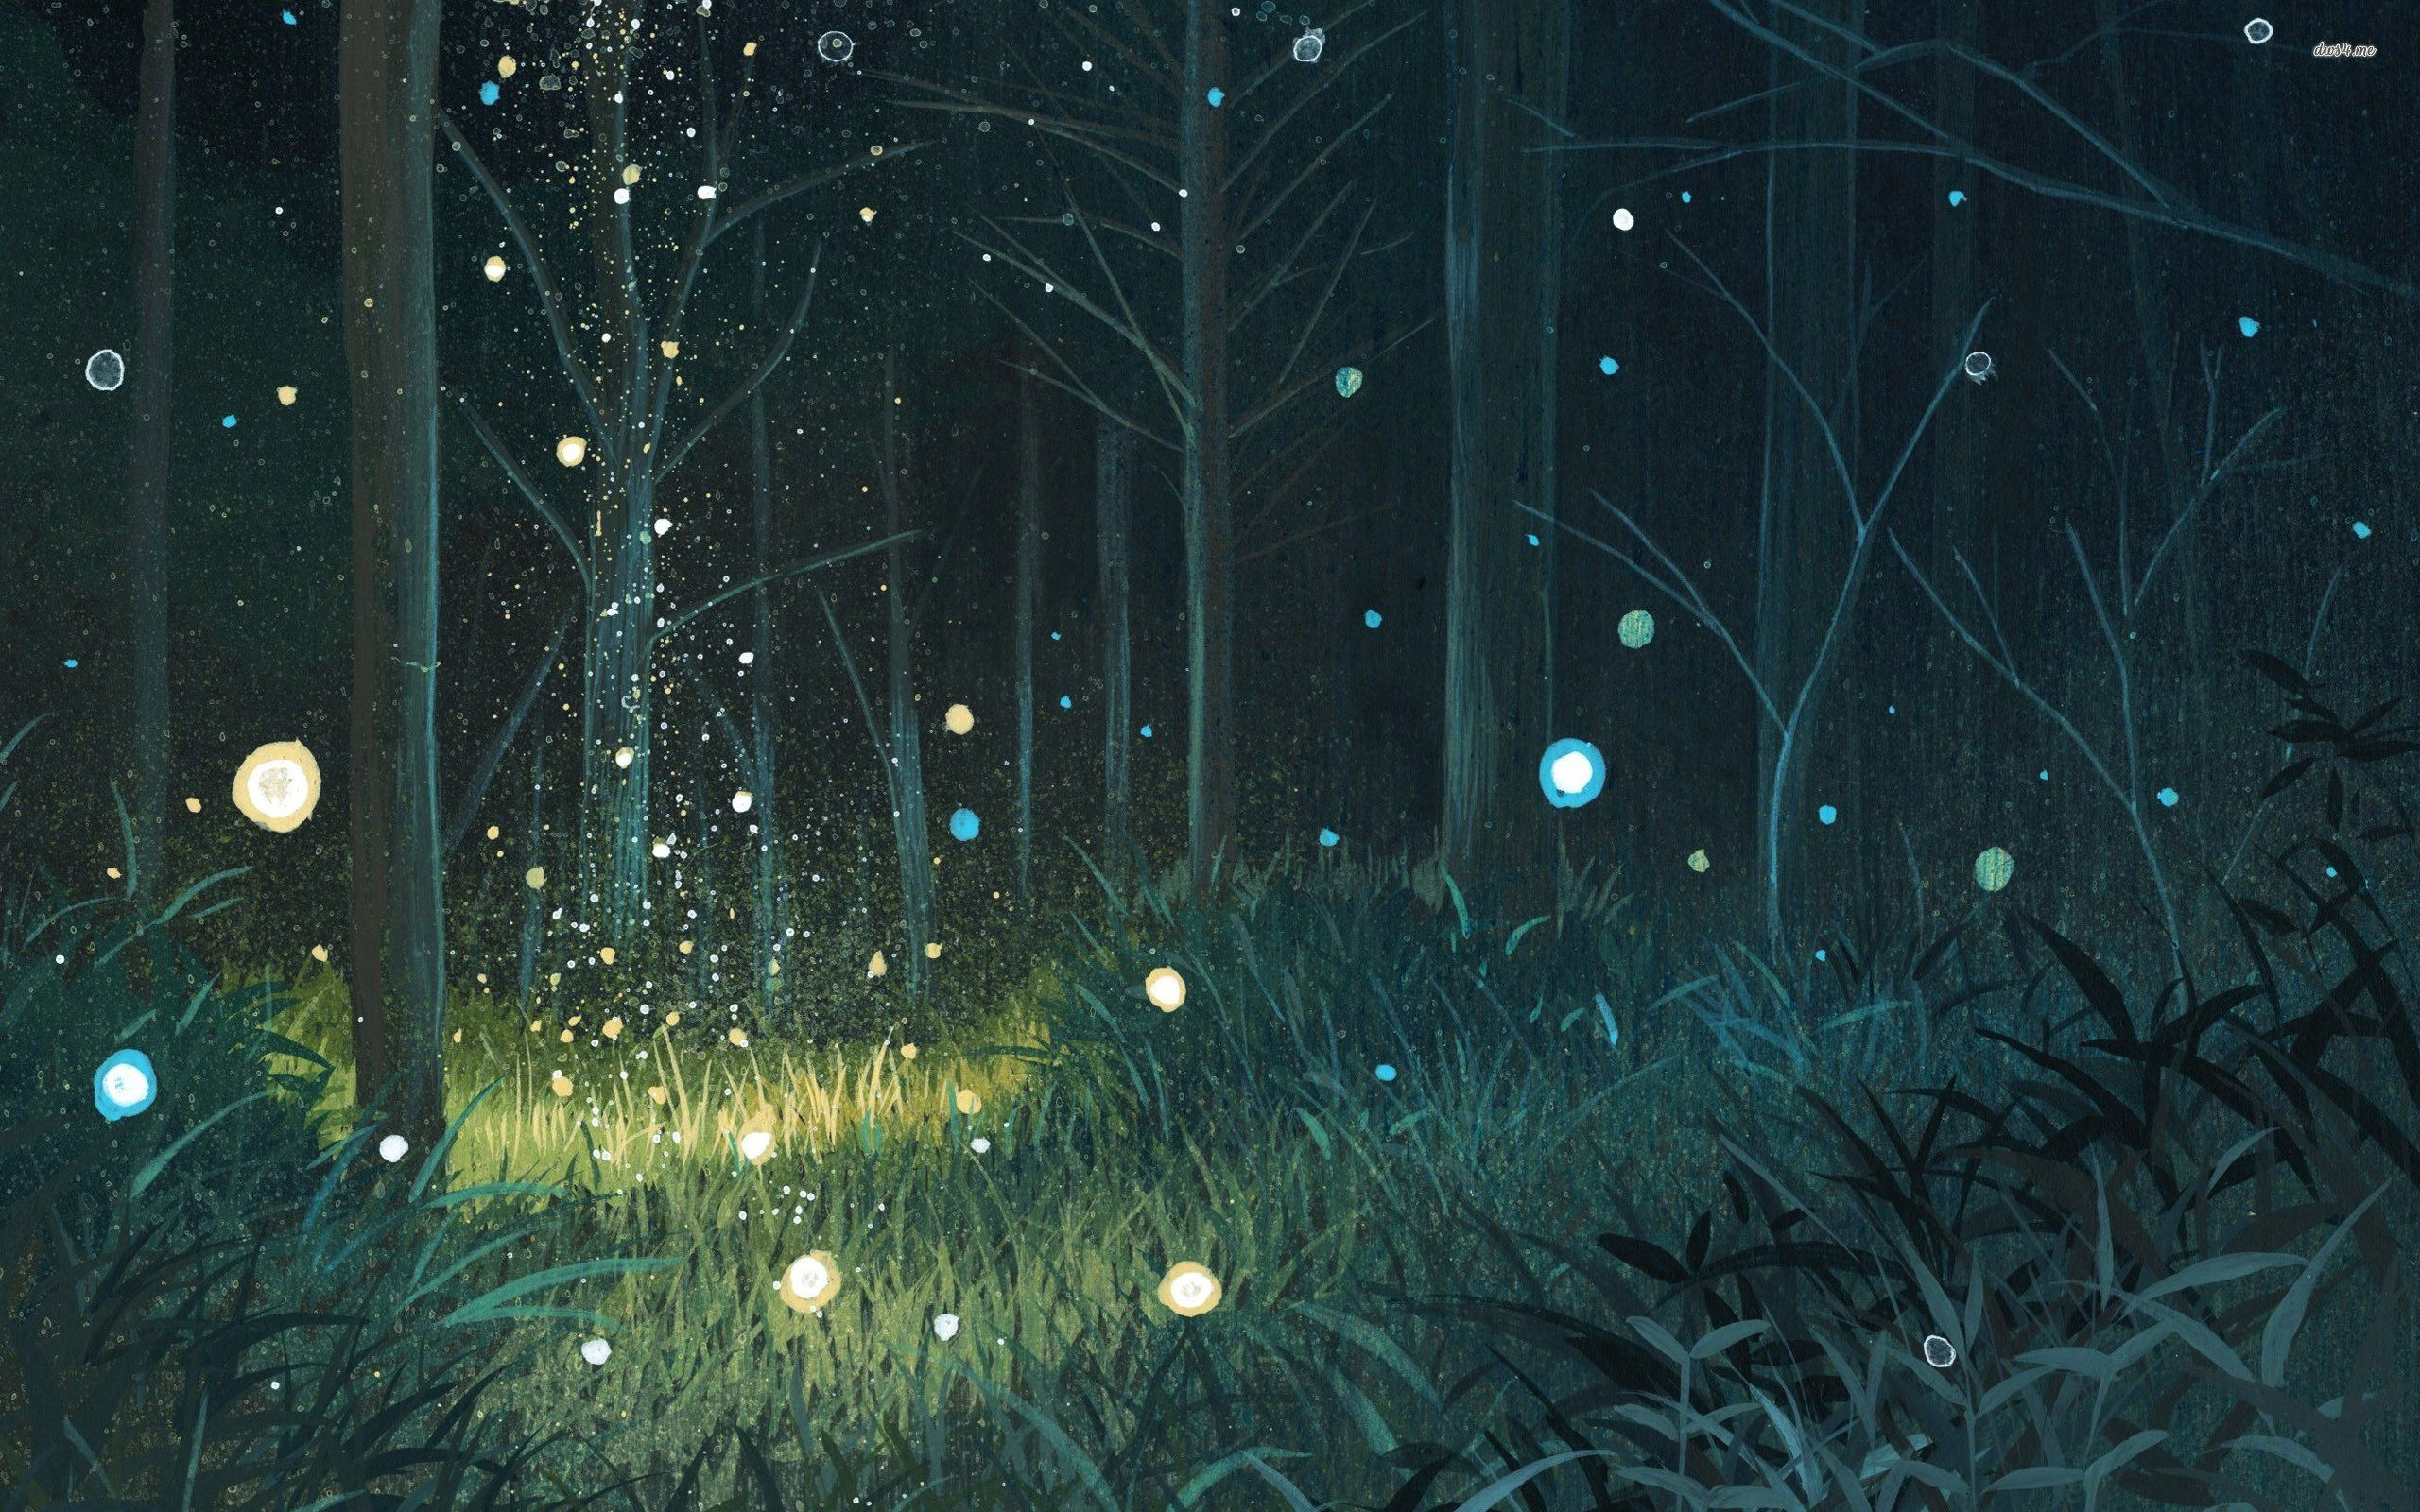 Fantastic Wallpaper Night Forest - 4f864be273140428eab2f4942d7a08d4  Pictures-561486.jpg